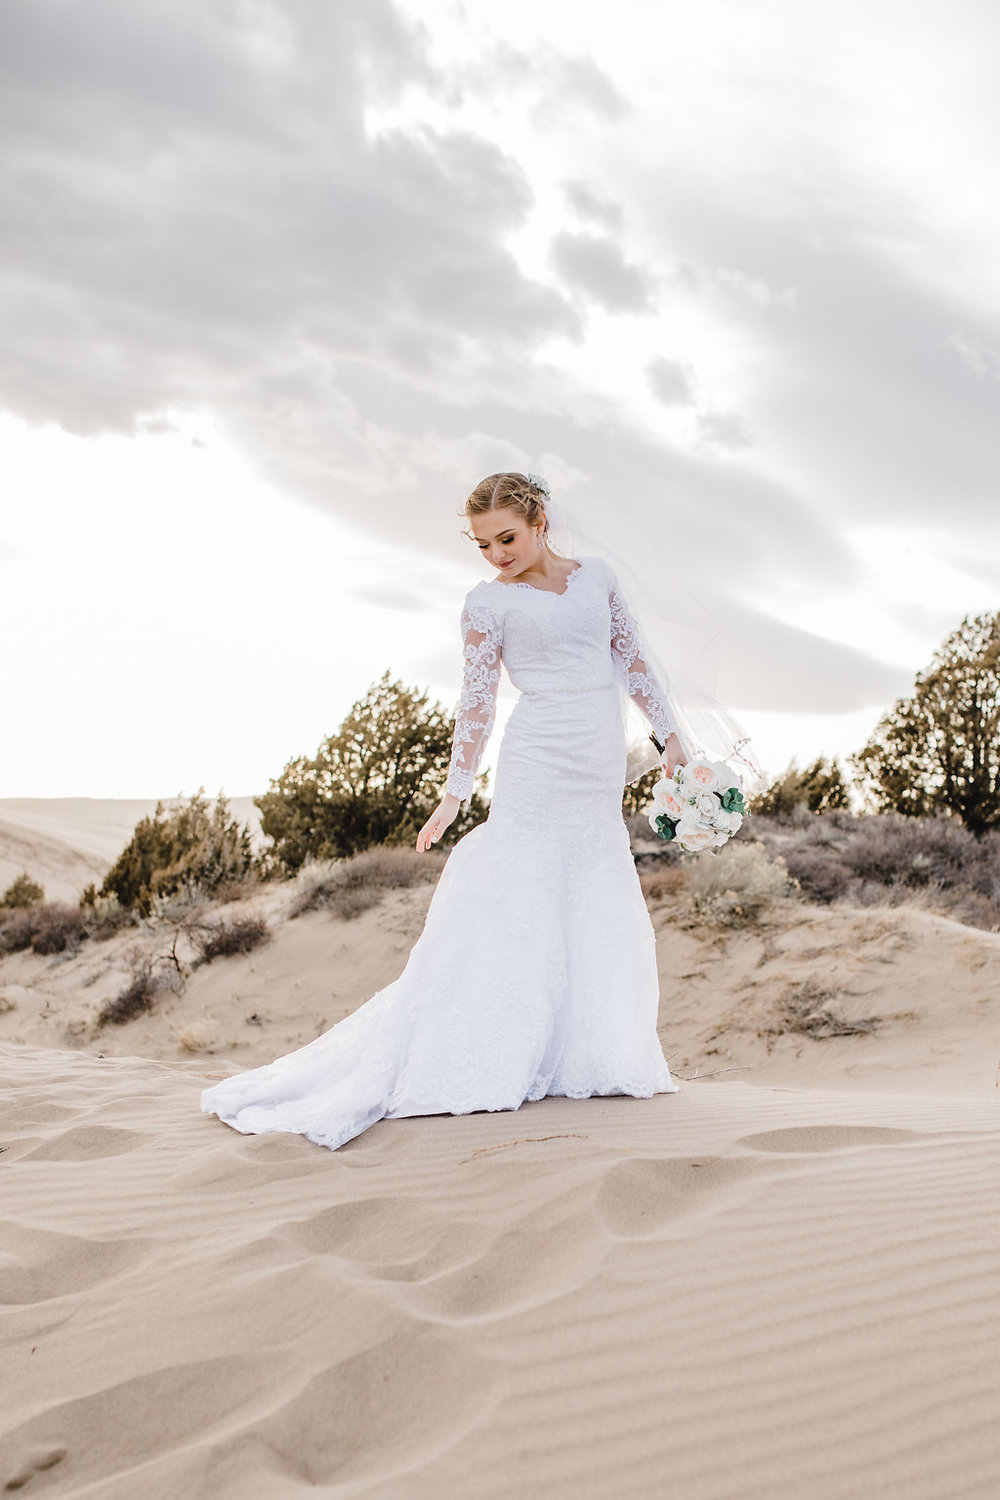 sand dunes rexburg bridals photography outdoor adventurous natural posing wedding photographer calli richards